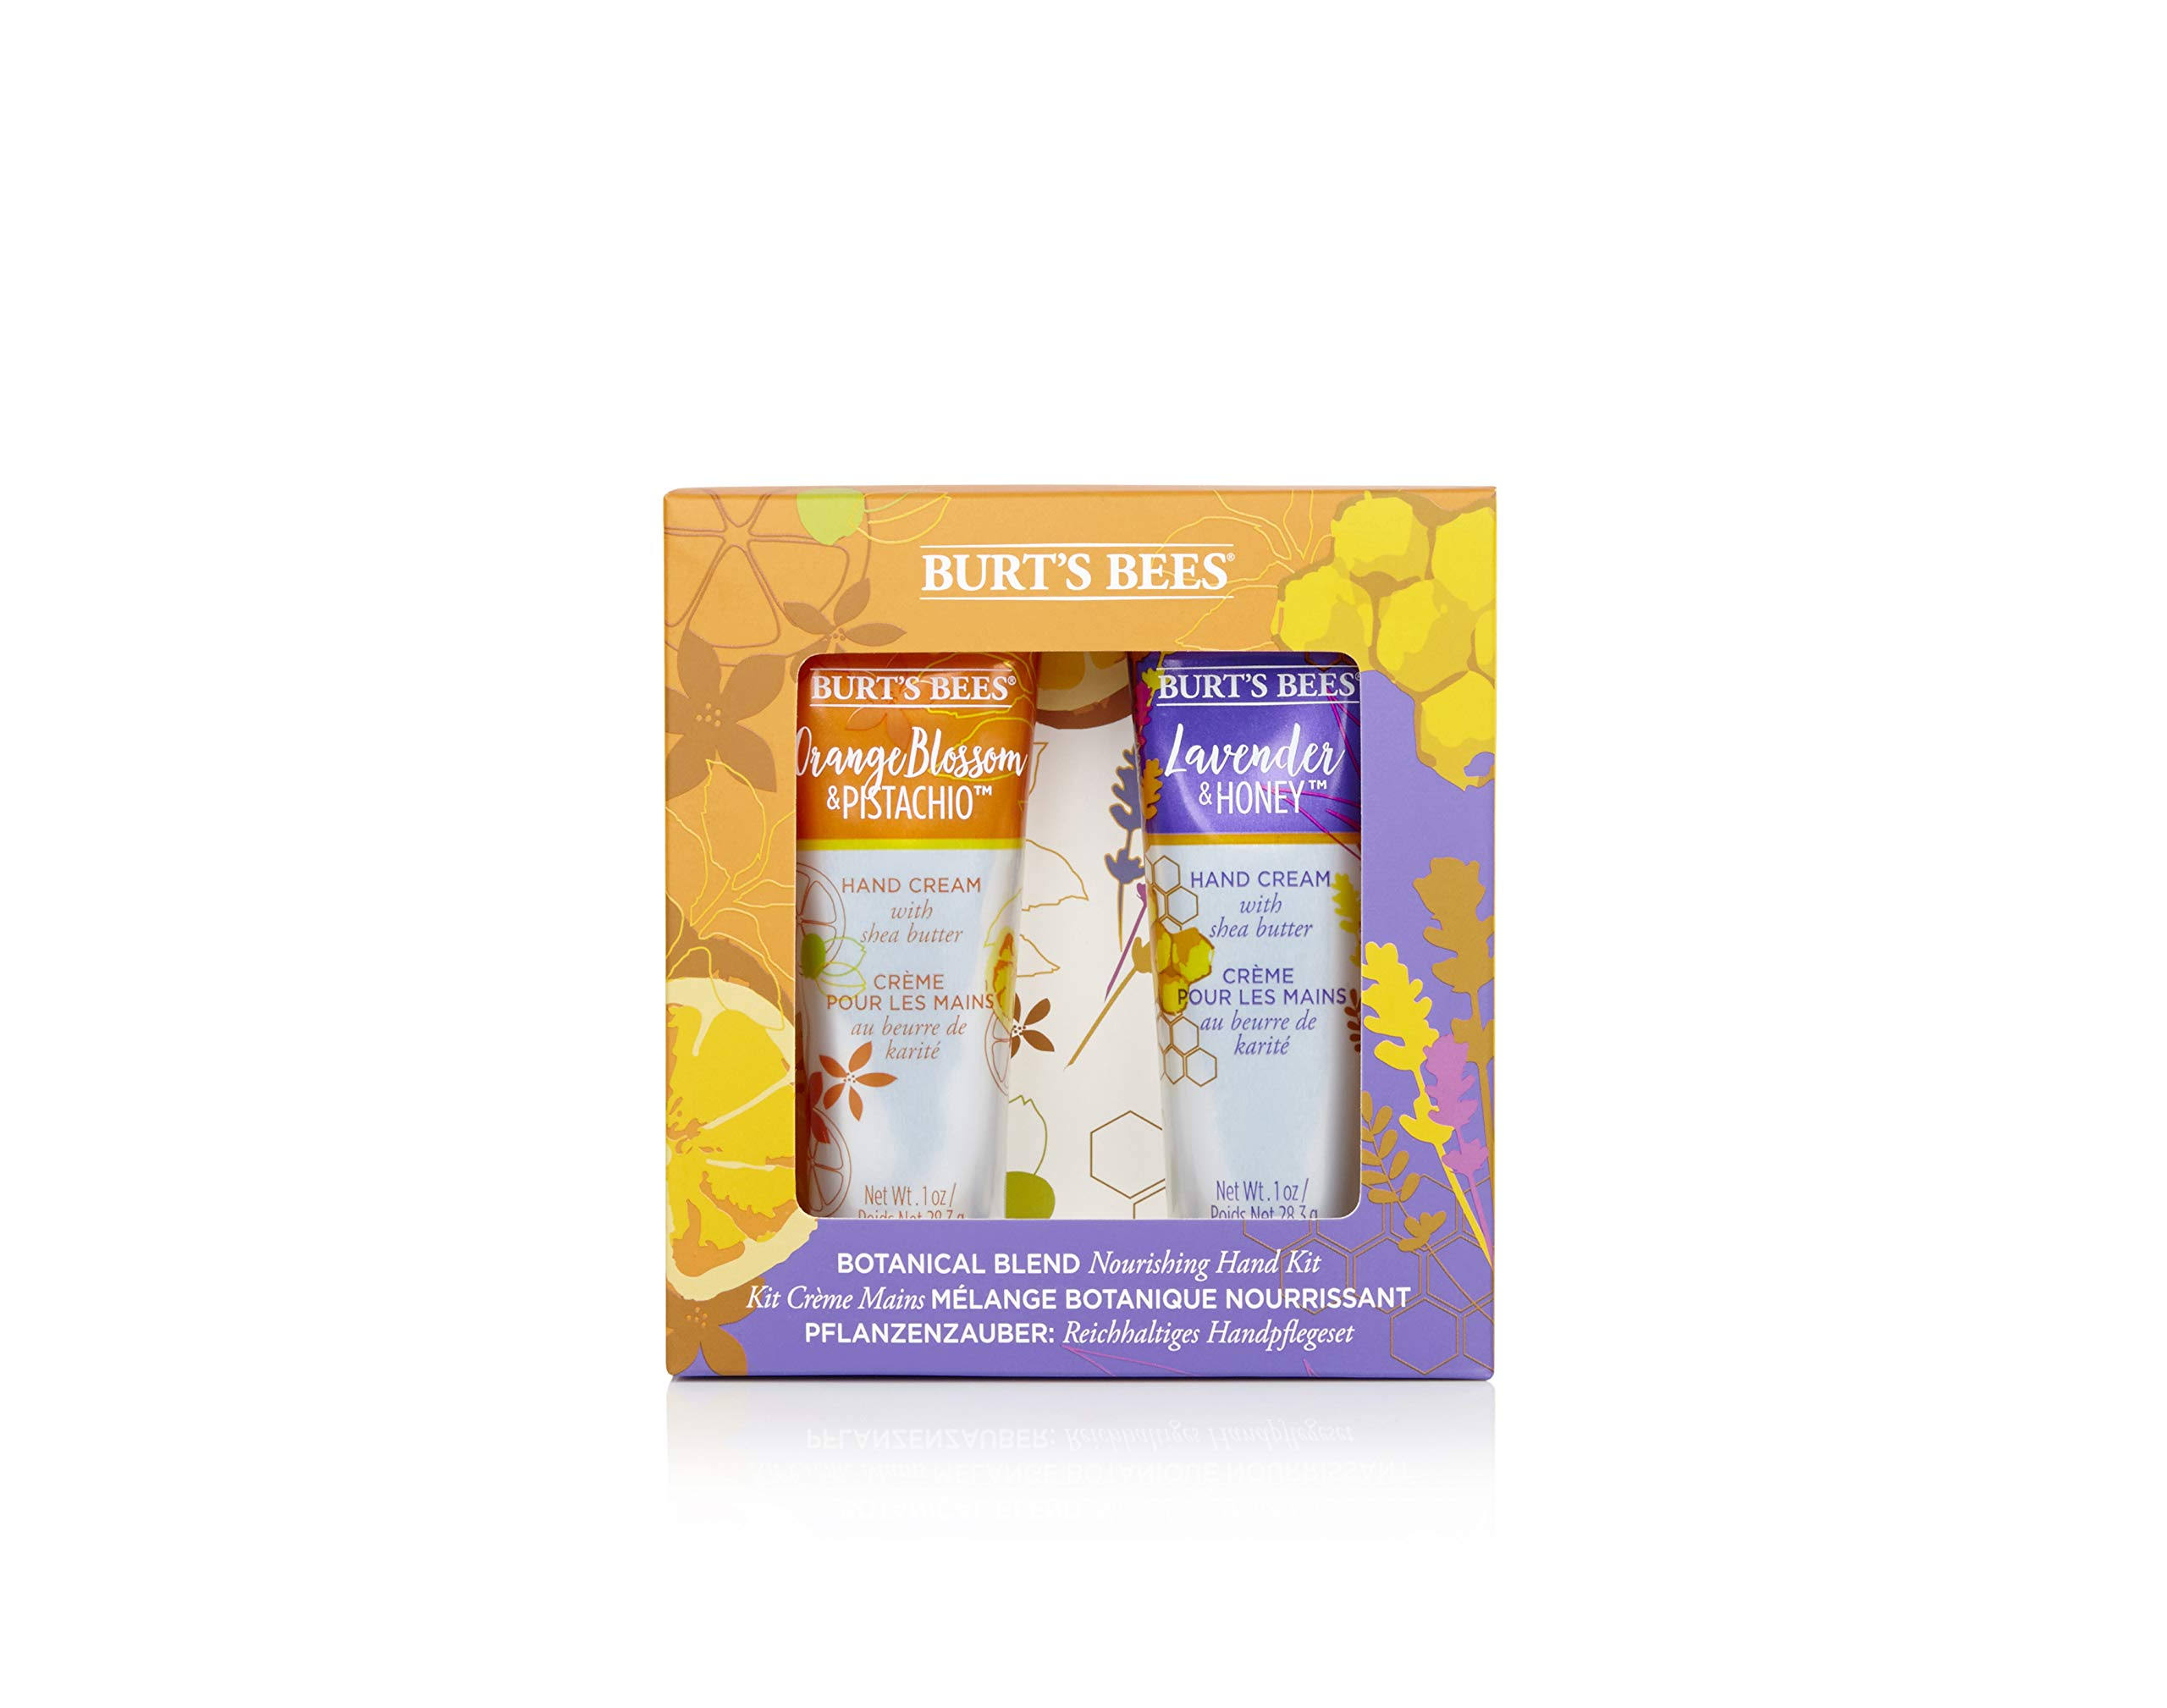 Burt's Bees Botanical Blend Nourishing Hand Kit